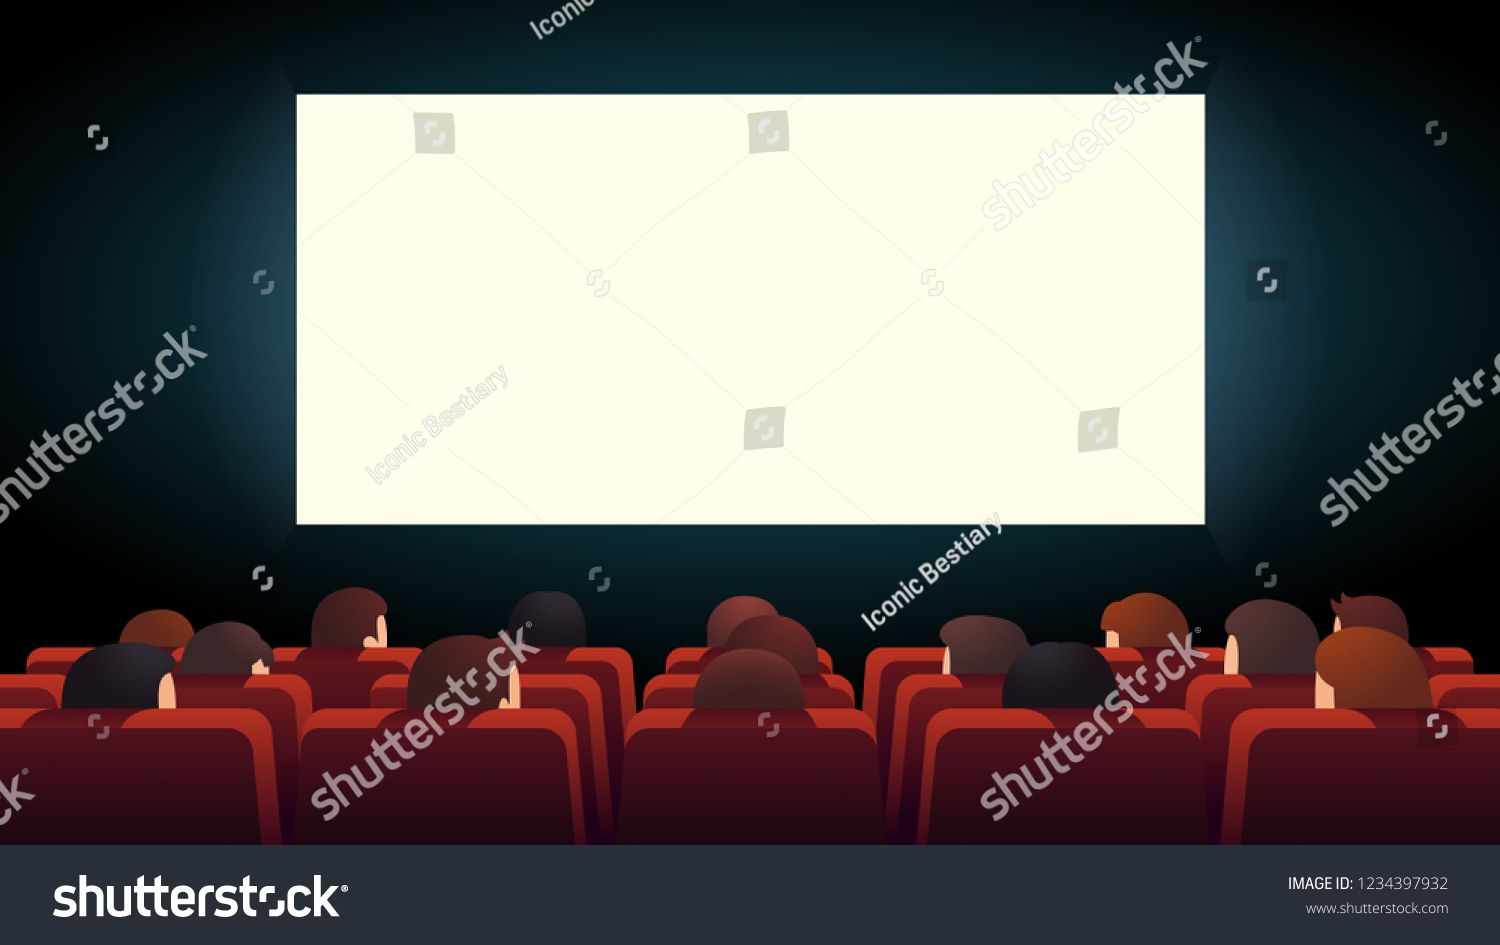 Movie Theater Interior Cinema Audience Crowd Watching Film Sitting In Rows Of Red Comfortable Chairs Looking At Big Lit Theatre Interior Movie Theater Cinema